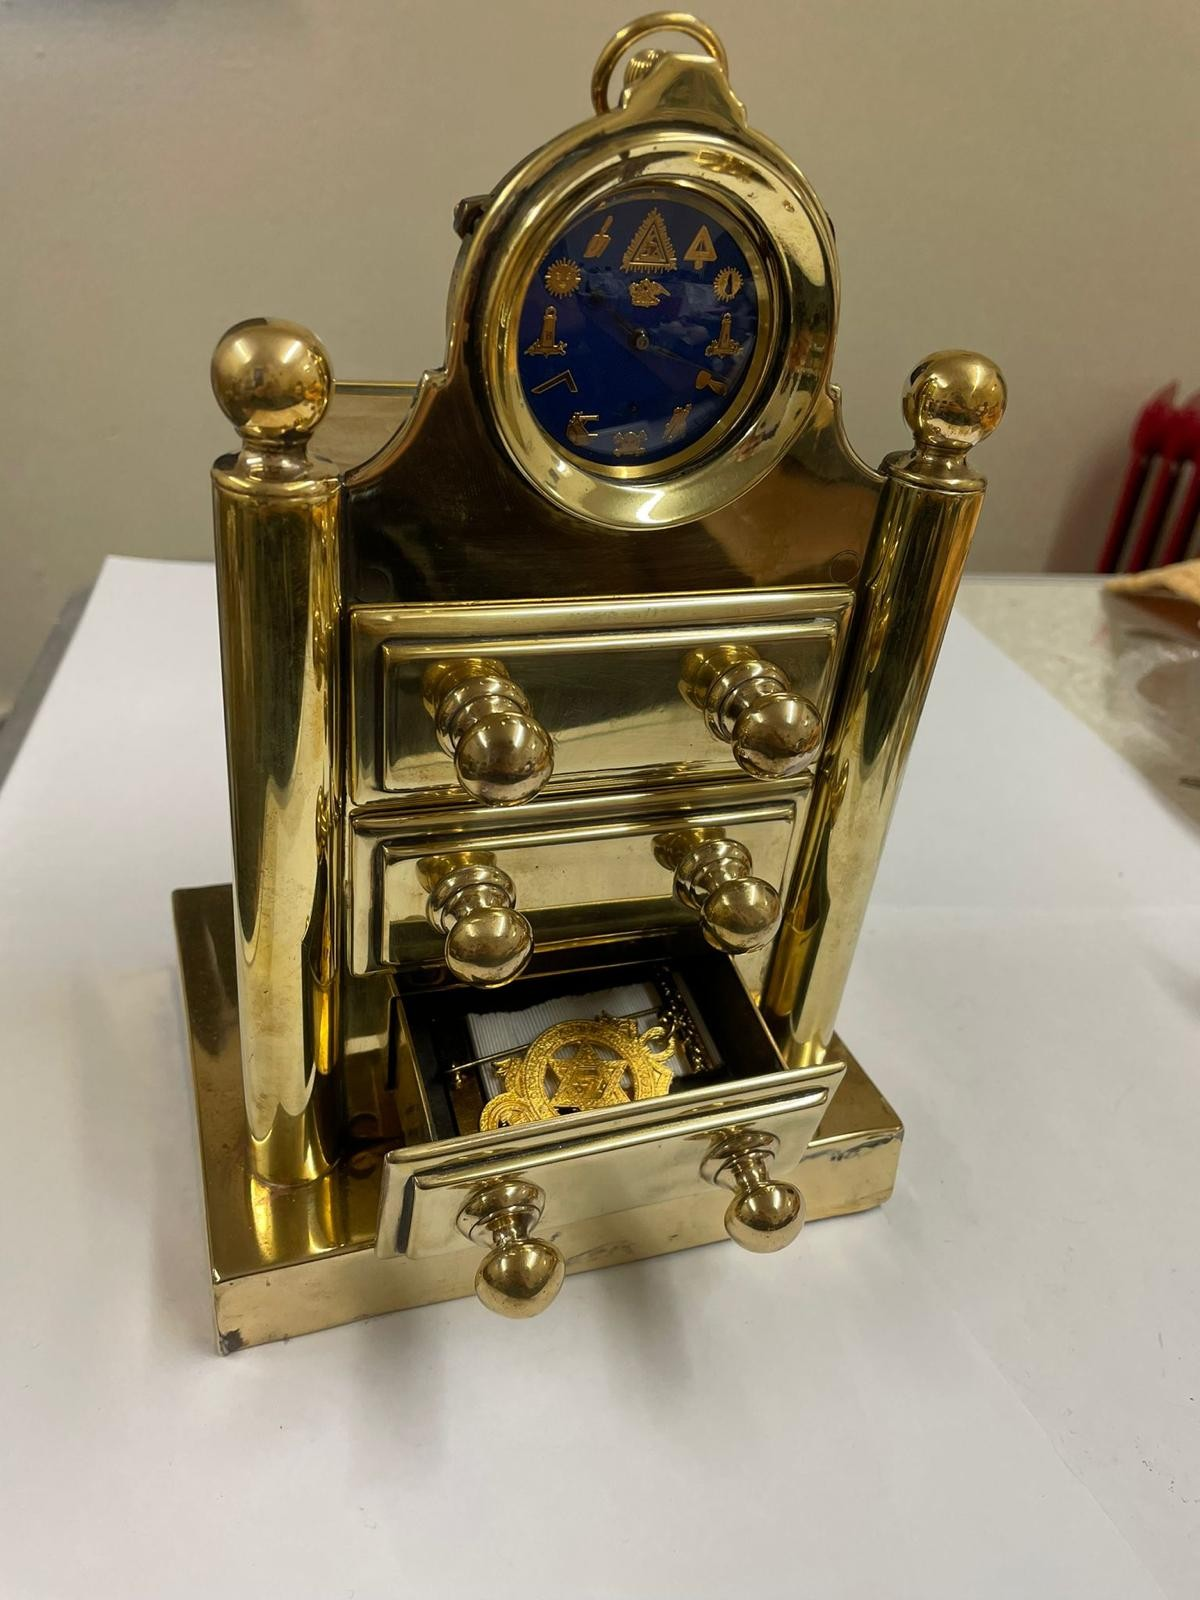 Vintage Masonic Rolex pocket watch with stand good condition and good working order but no - Image 19 of 21